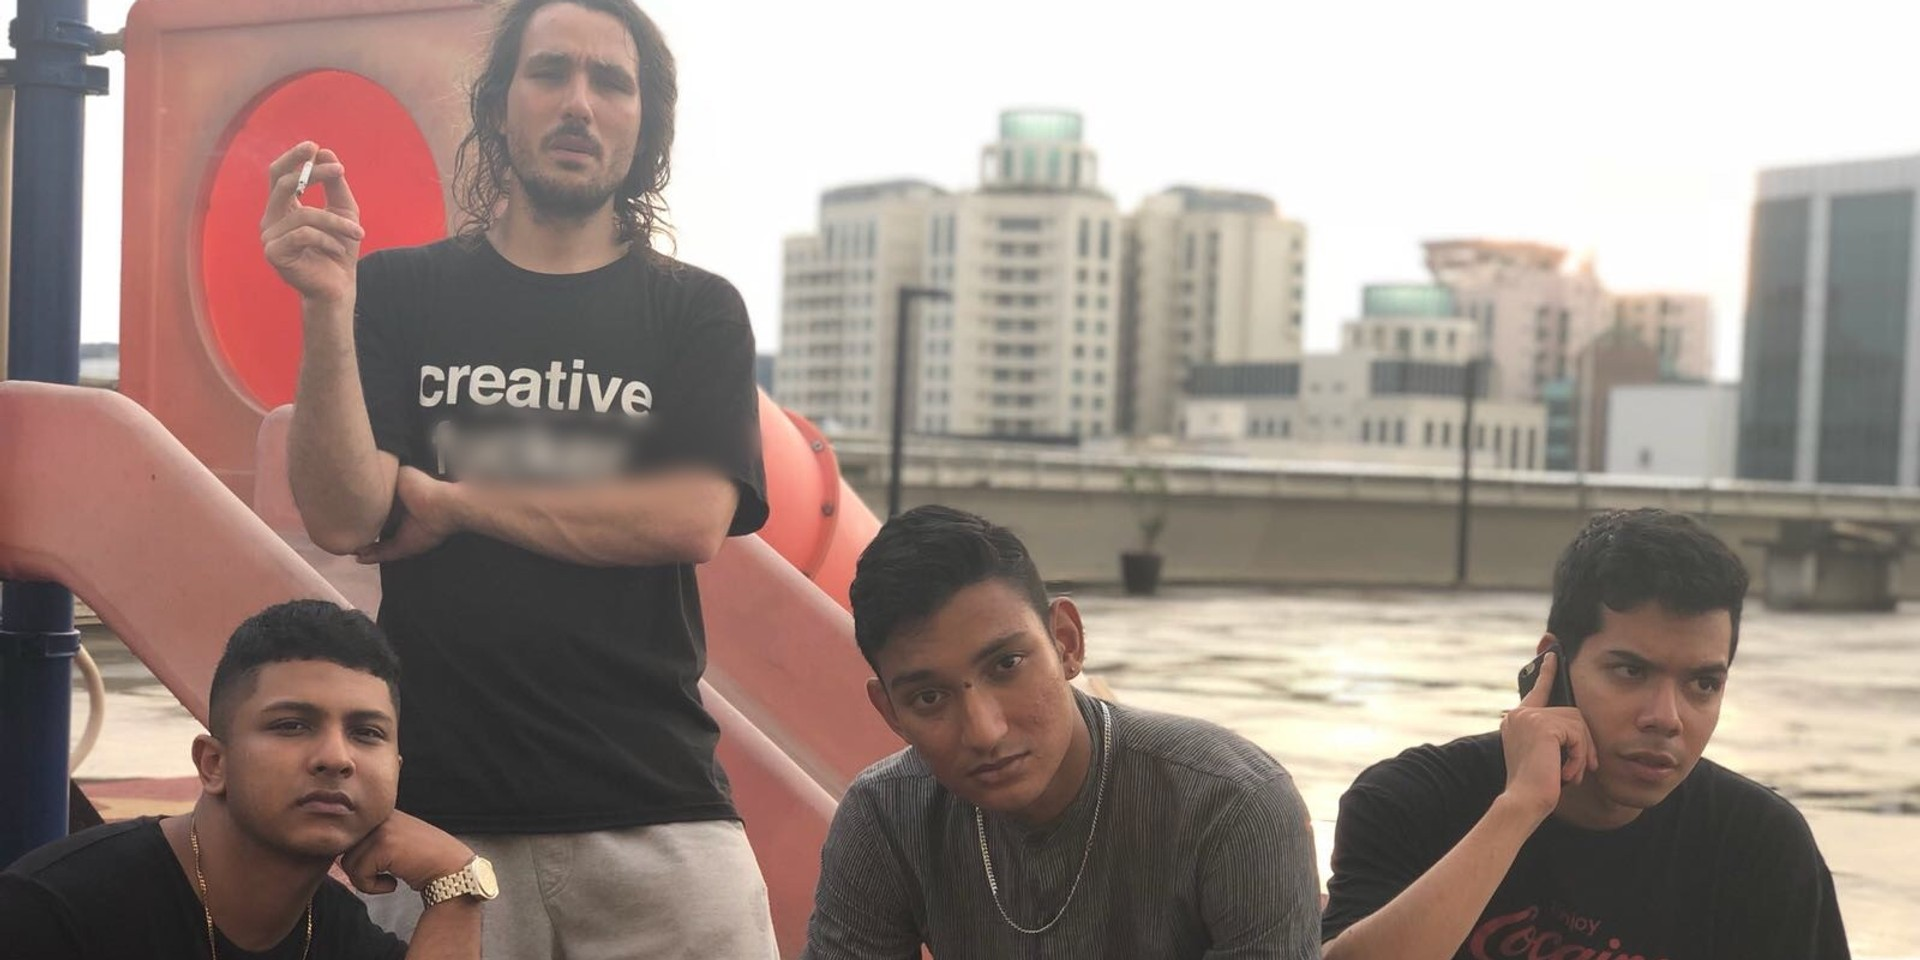 Mediocre Haircut Crew releases new song 'Theme Titans', shares collaborative music video